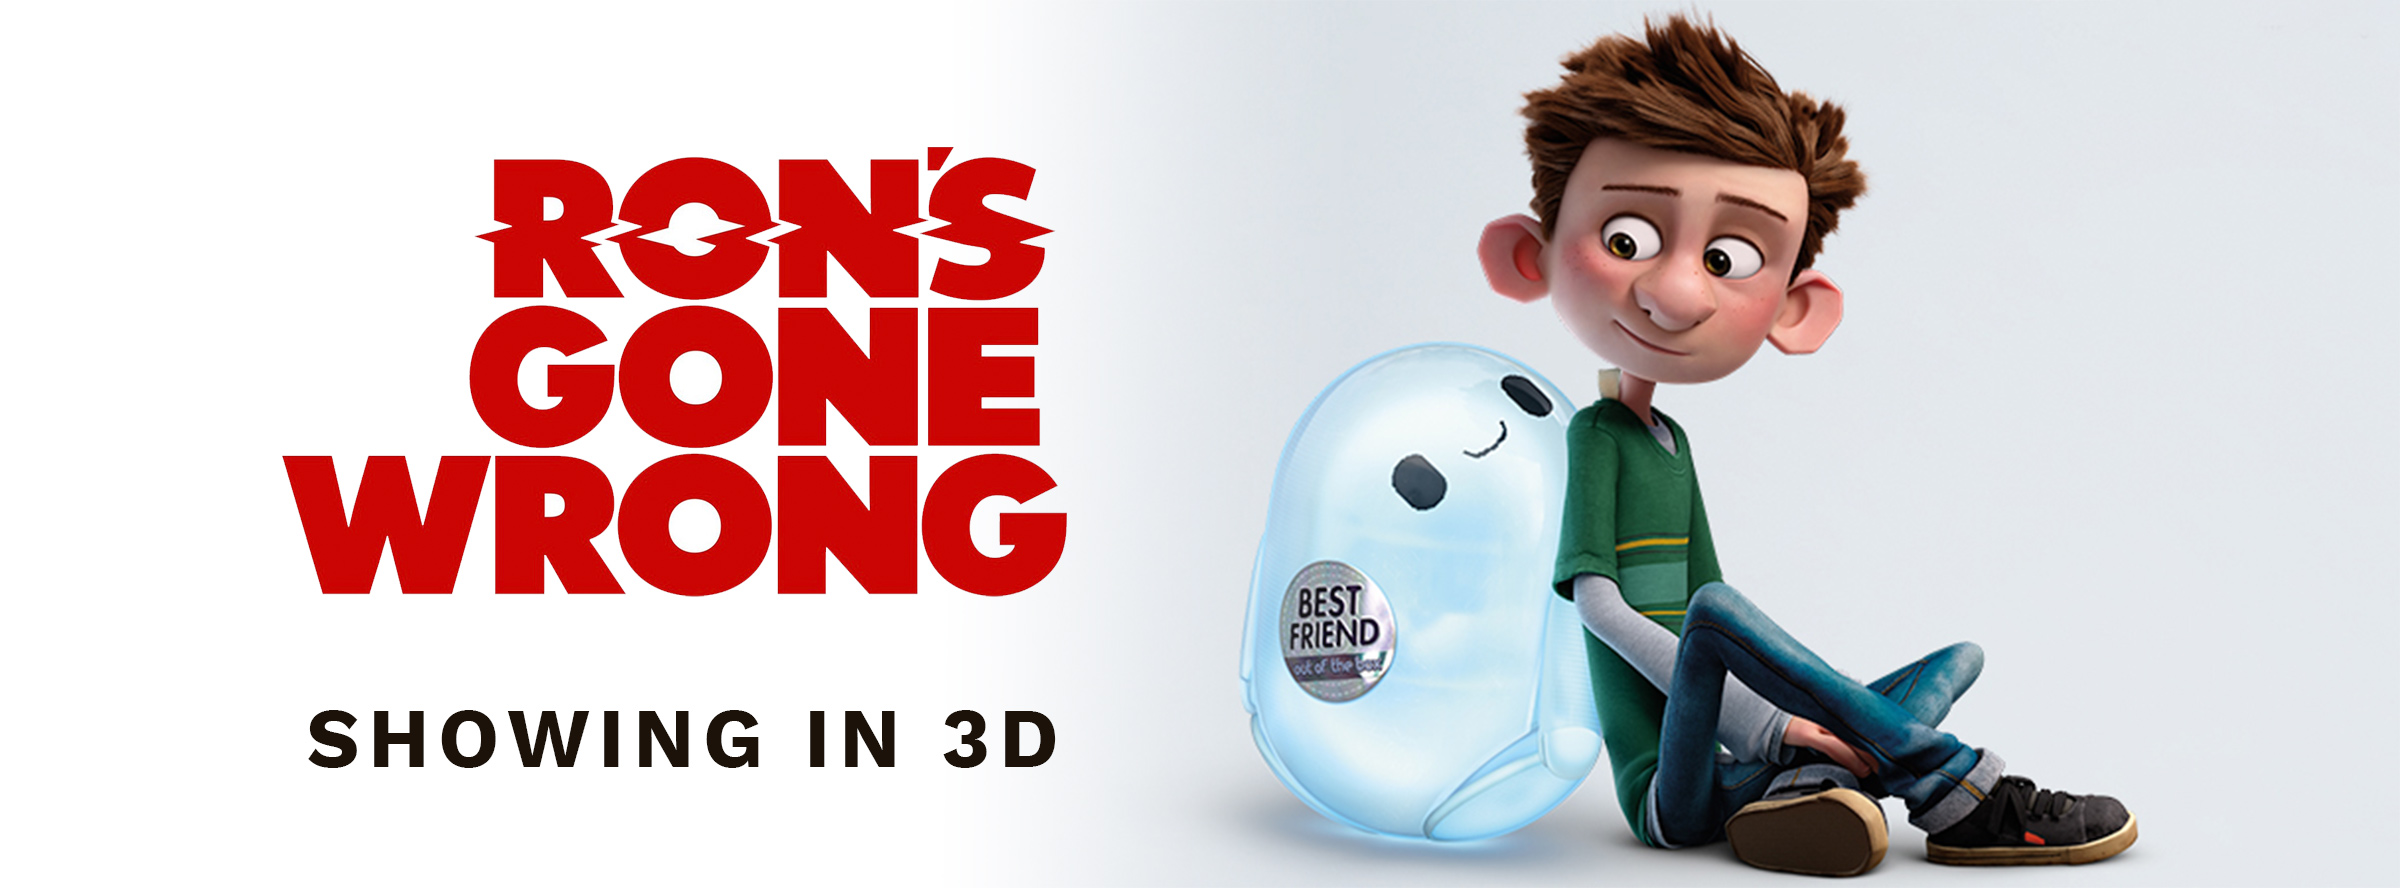 rons-gone-wrong-3d